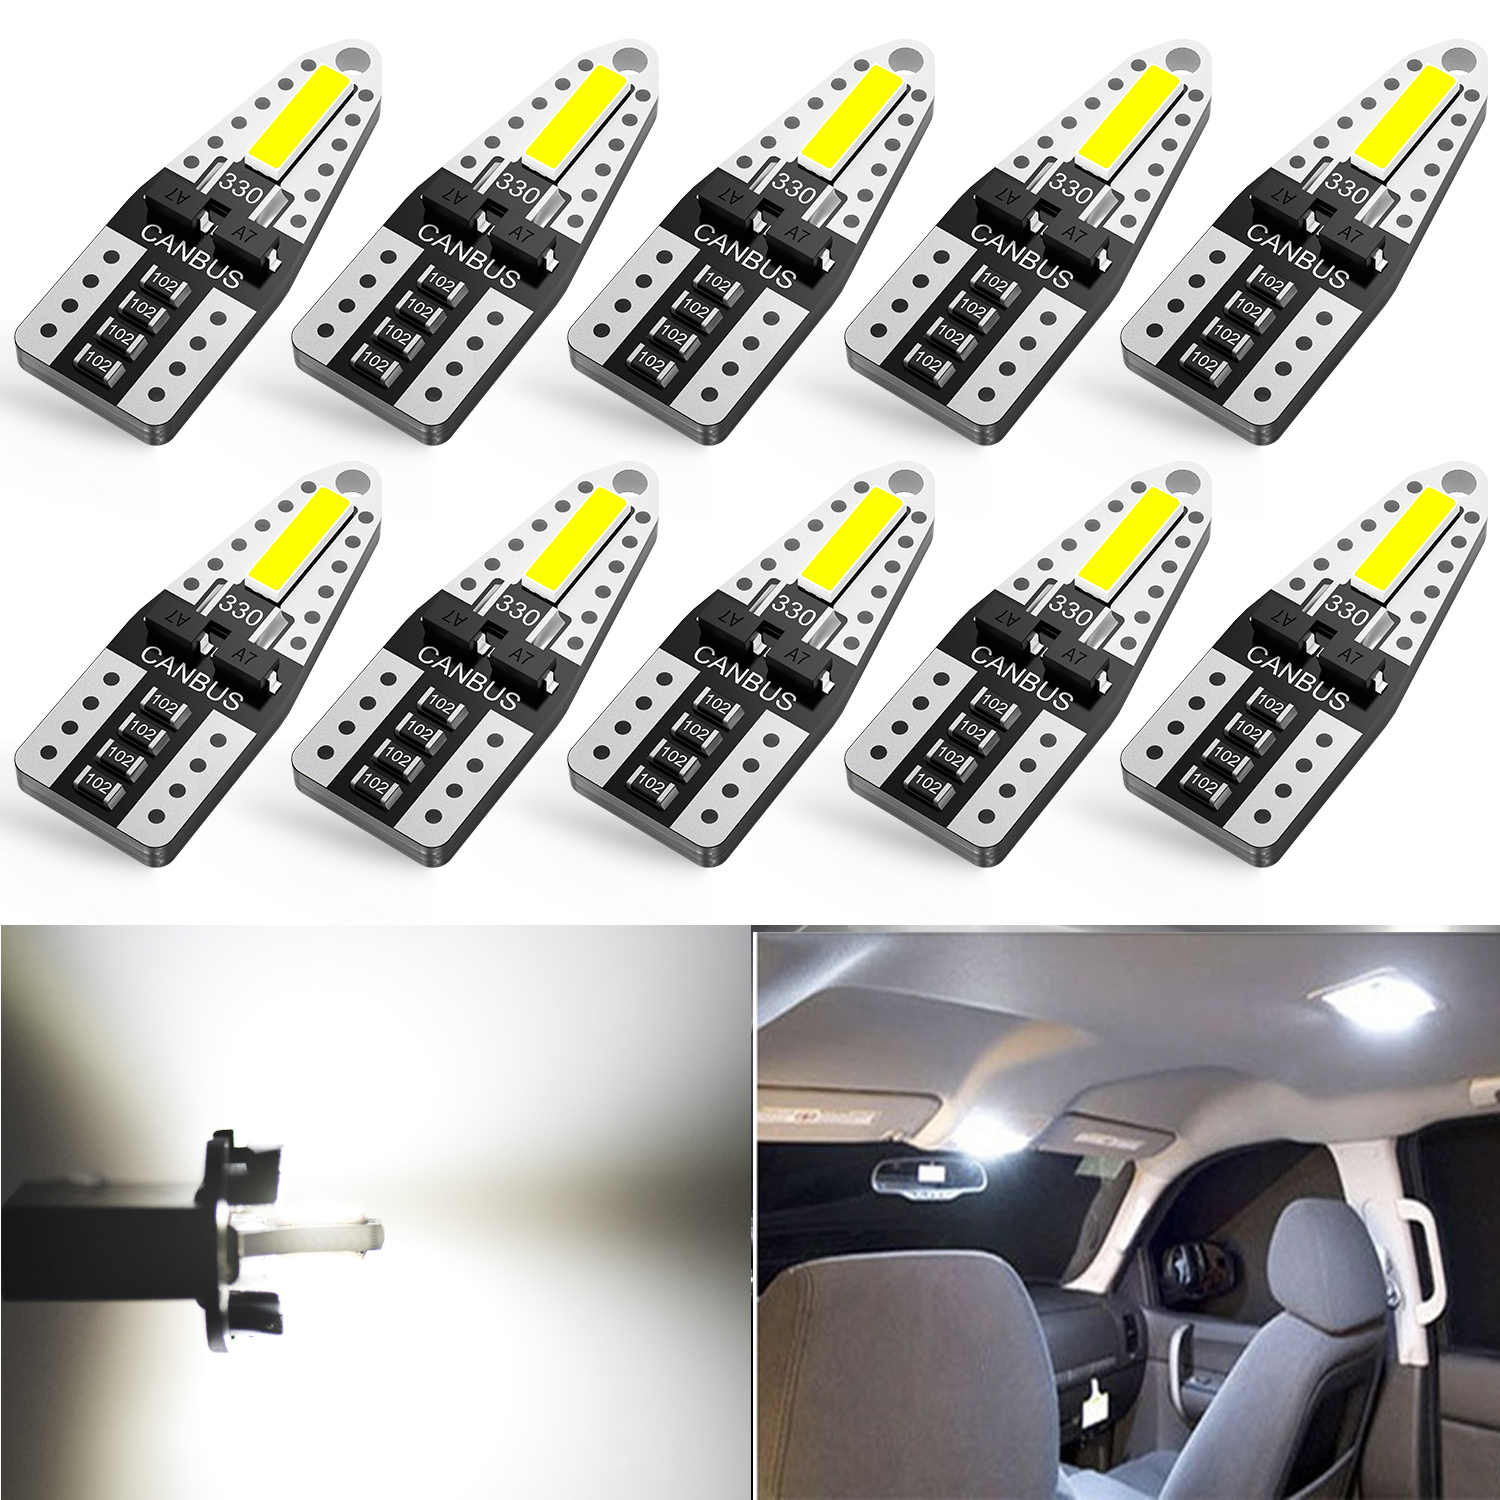 AUXITO 10x T10 Led W5W Canbus Error Free Bulb For VW T5 Passat B5 B6 B8 Golf 4 6 7 MK4 MK3 Jetta MK6 Scirocco Car Interior Light image